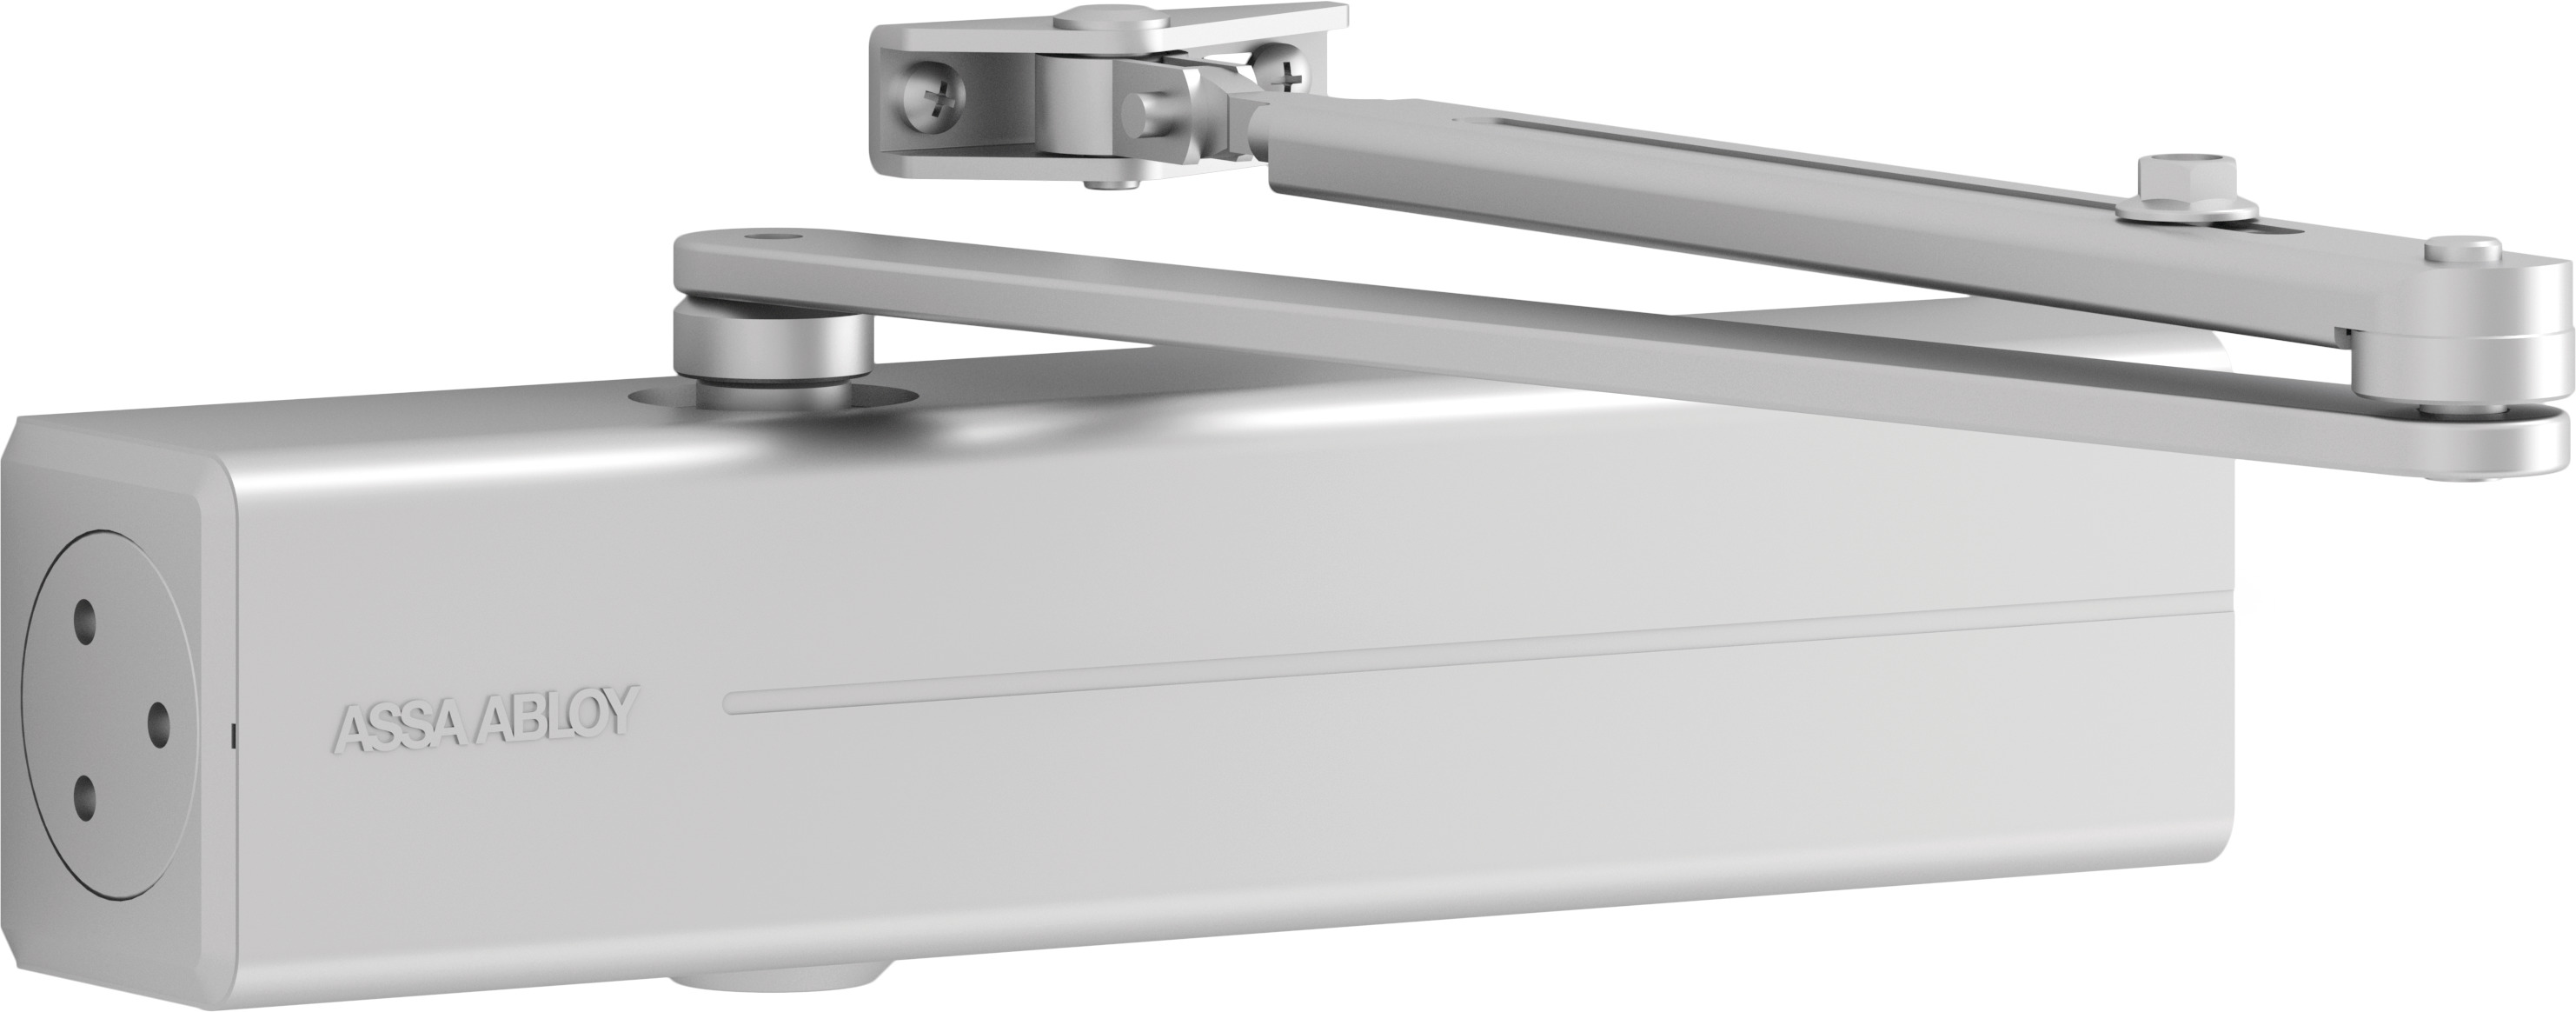 DC300DA - Door closer - Overhead door closer with drive rod - Rack